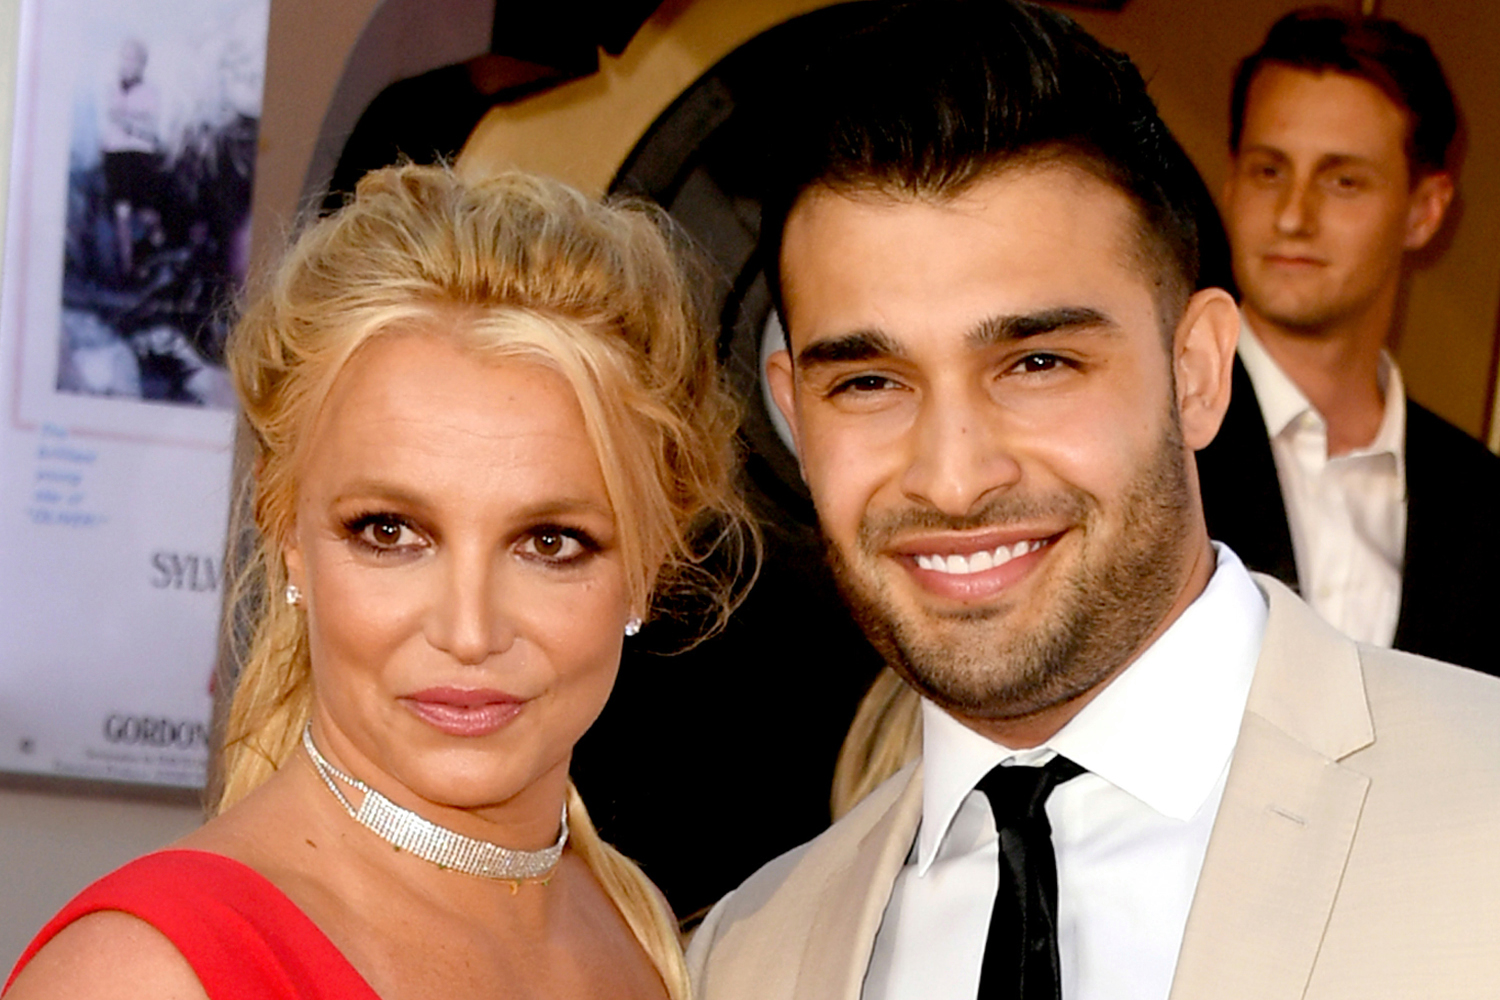 Britney Spears and her partner Sam Asghari are rumored to be arranging a wedding.